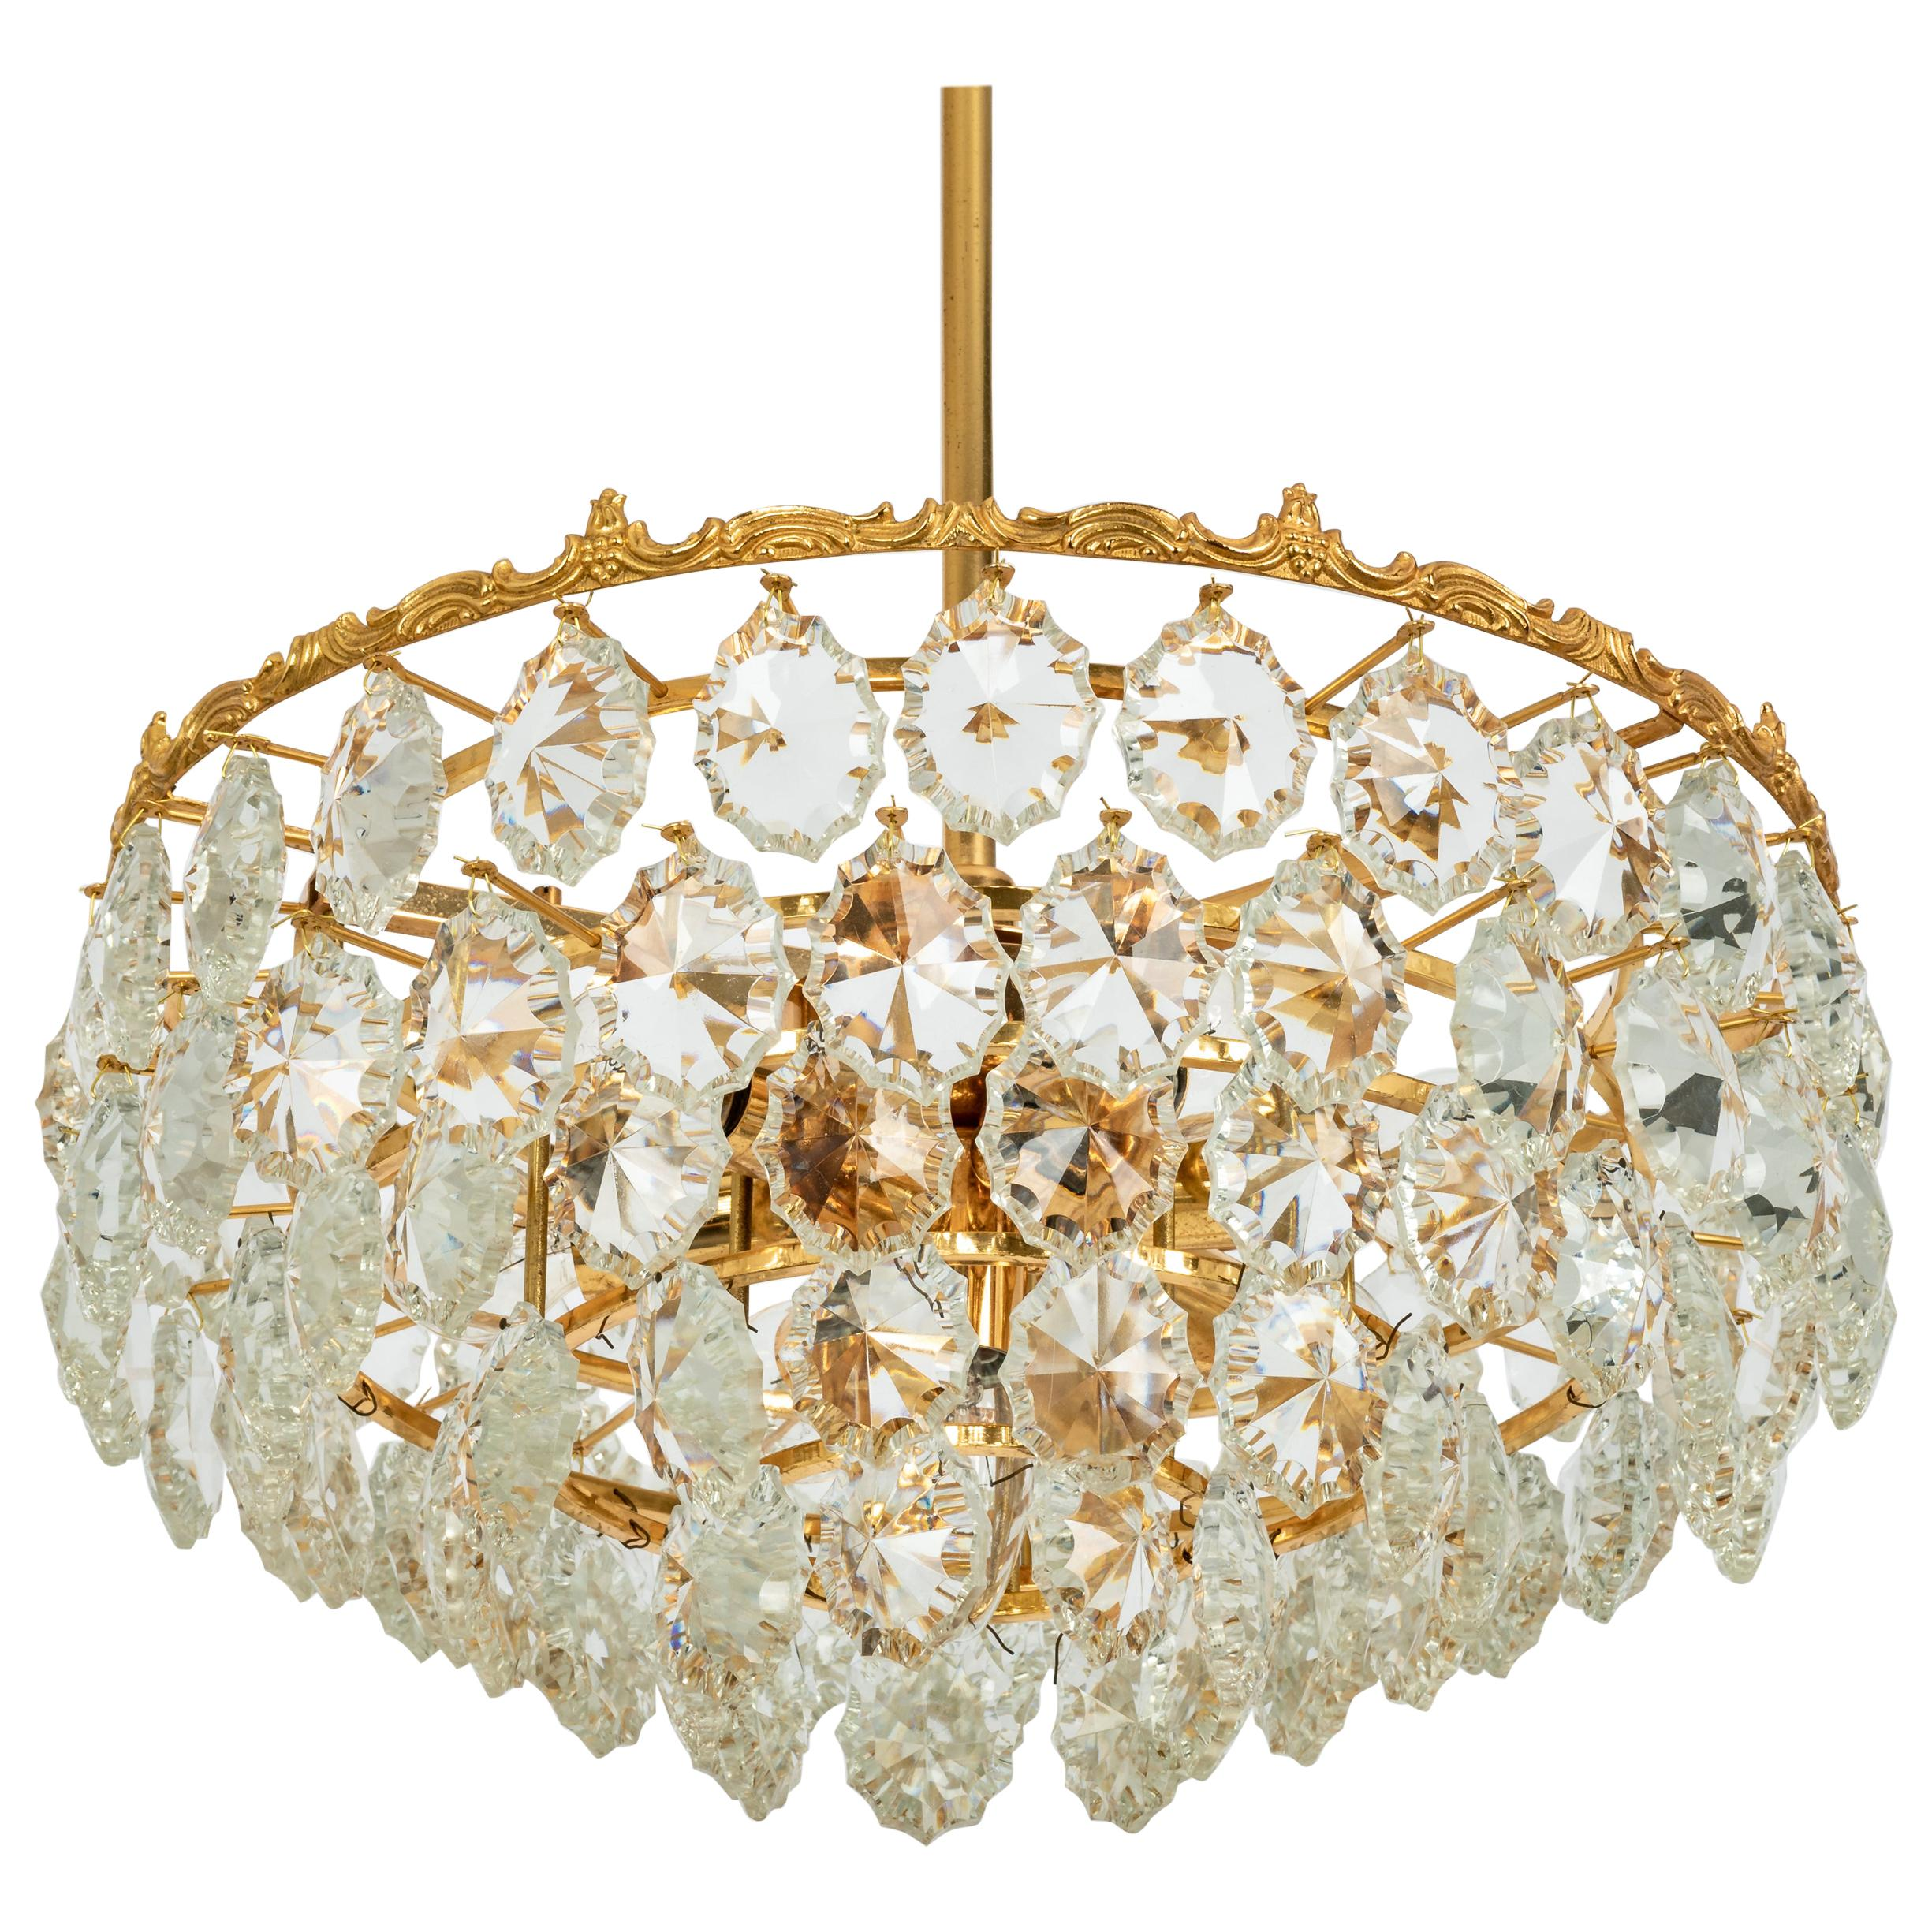 Bakalowits Chandelier, Brass and Crystal Glass, Austria, 1960s